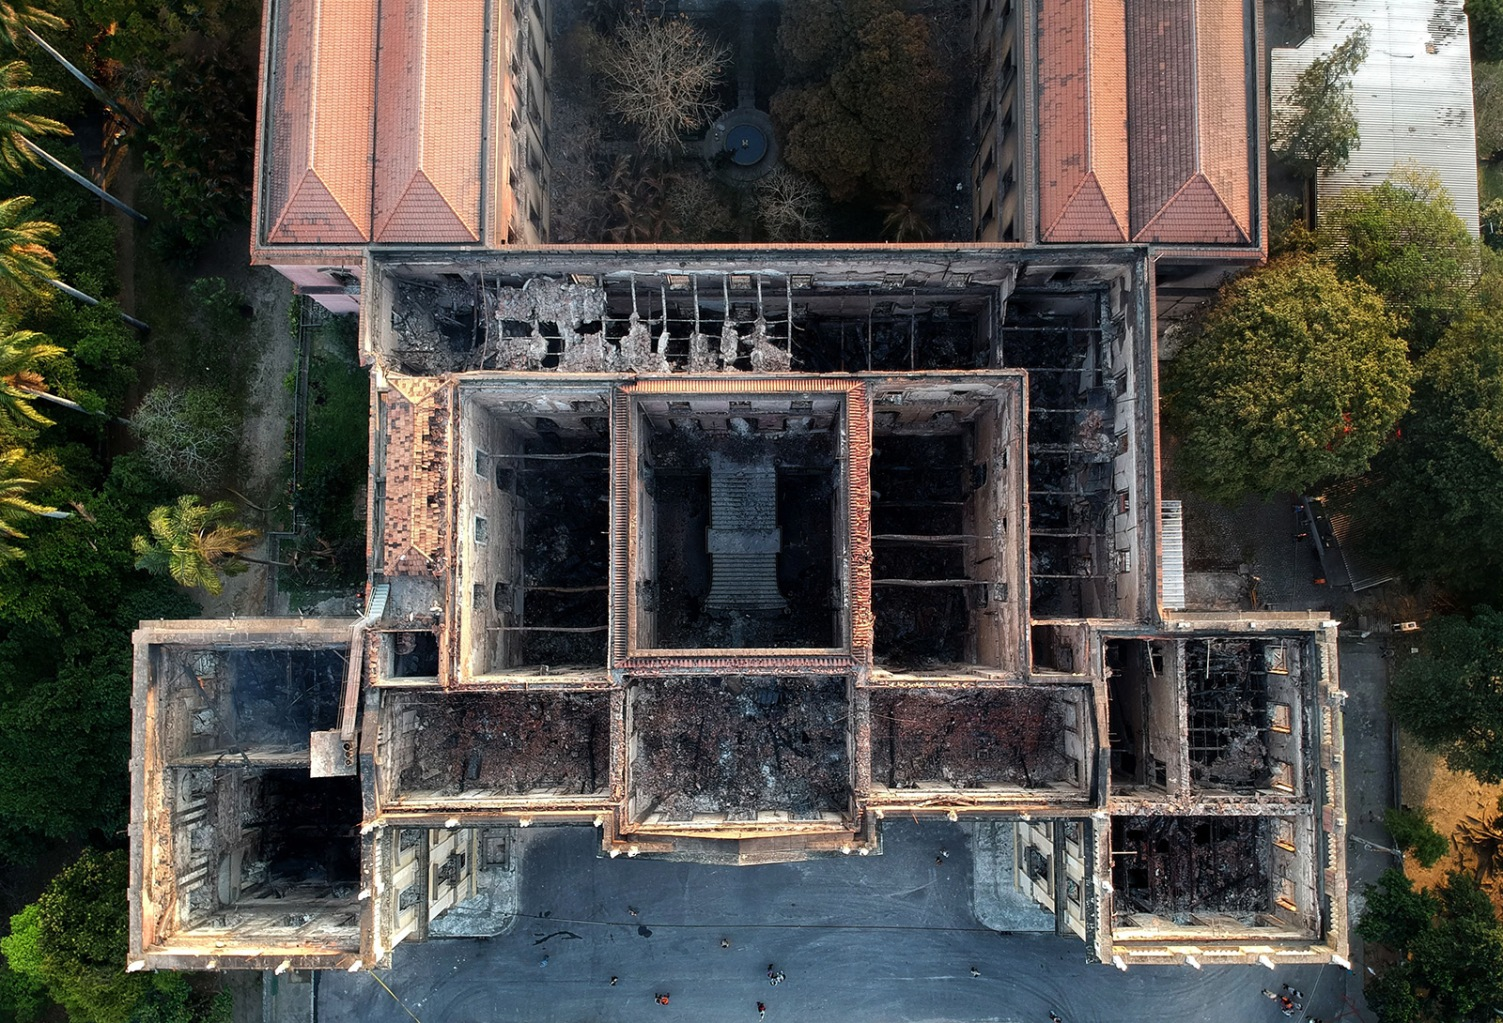 The interior of Rio de Janeiro's treasured National Museum, one of Brazil's oldest, is exposed on Sept. 3, a day after a massive fire ripped through the building and its artifacts. MAURO PIMENTEL/AFP/Getty Images